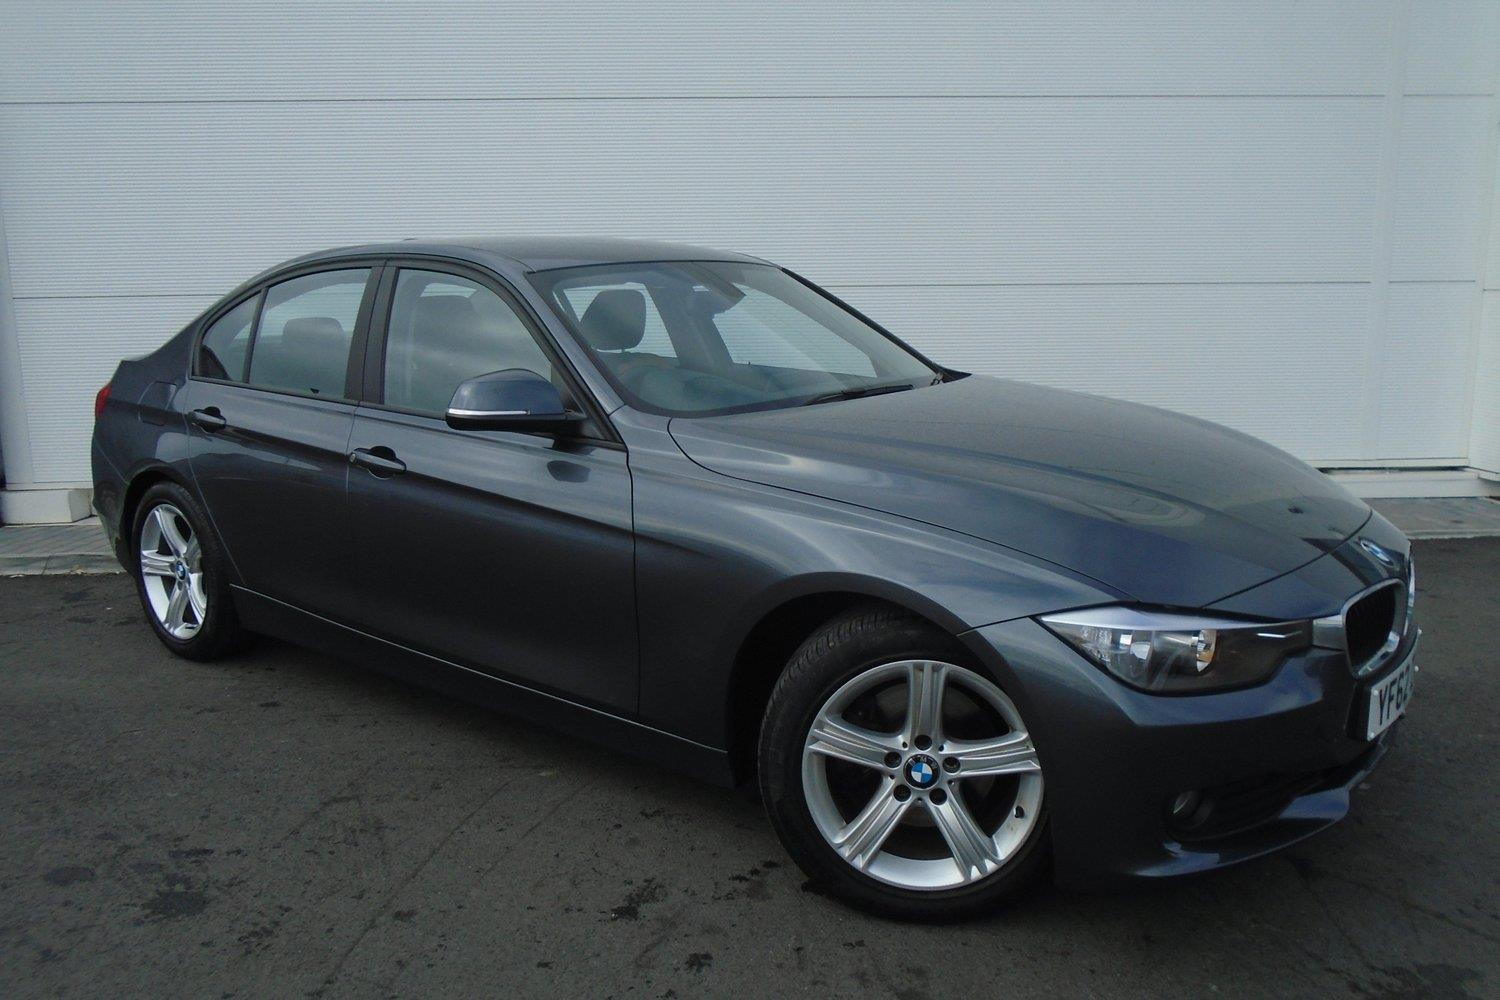 BMW 3 Series Saloon YF62ZVE - Image 10